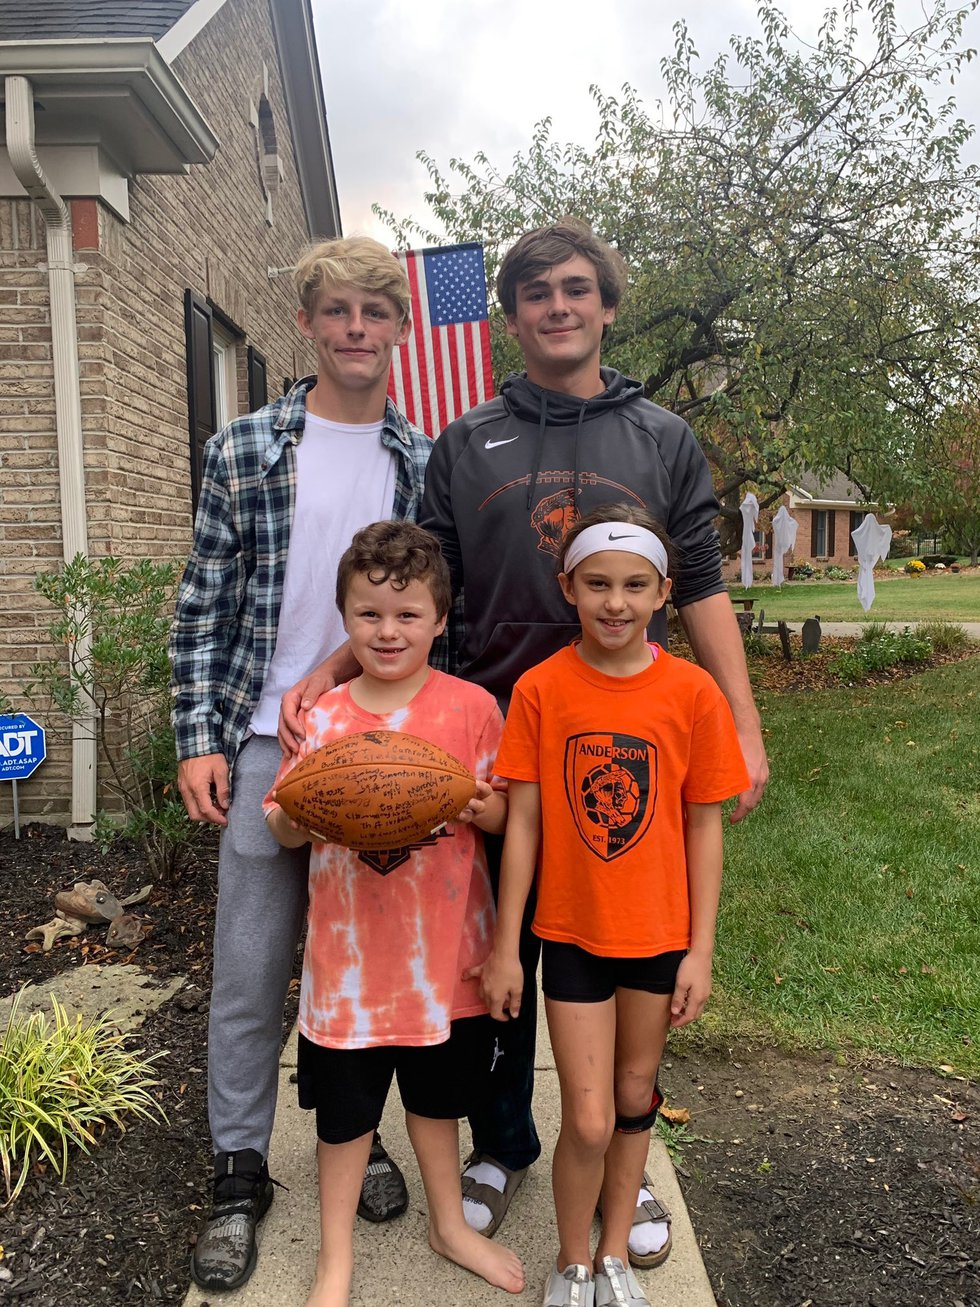 Anderson football players signed a football for Danny Celenza's kids after his passing